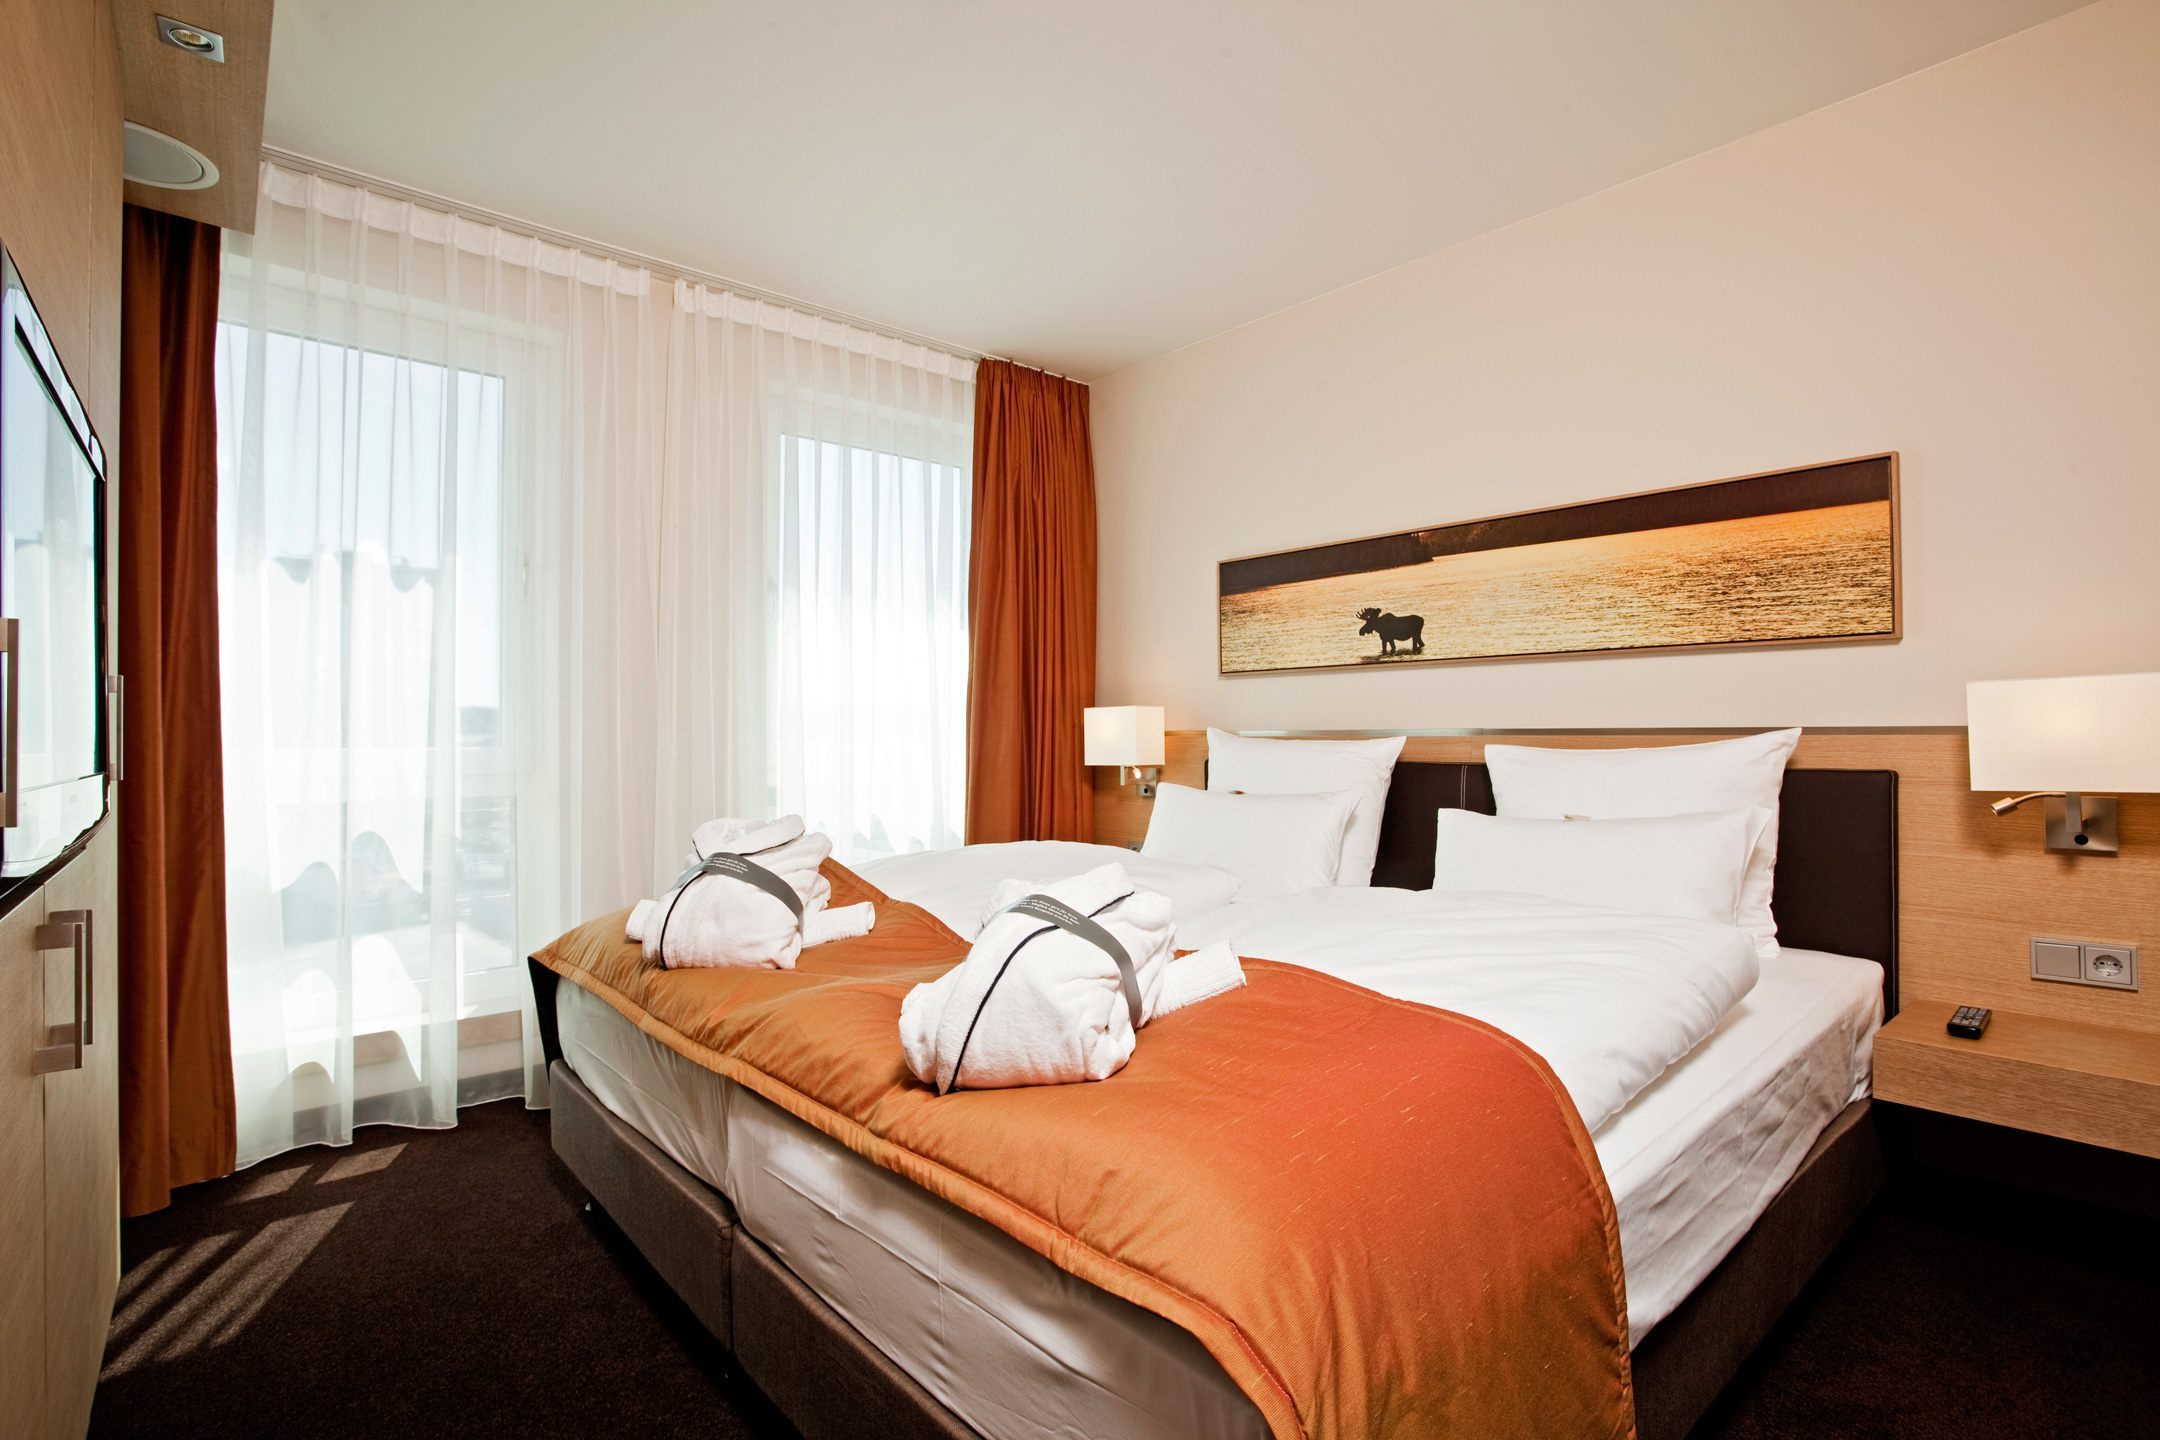 Interior view of the Suite in the ATLANTIC Hotel Kiel with double bed and luxourious furniture